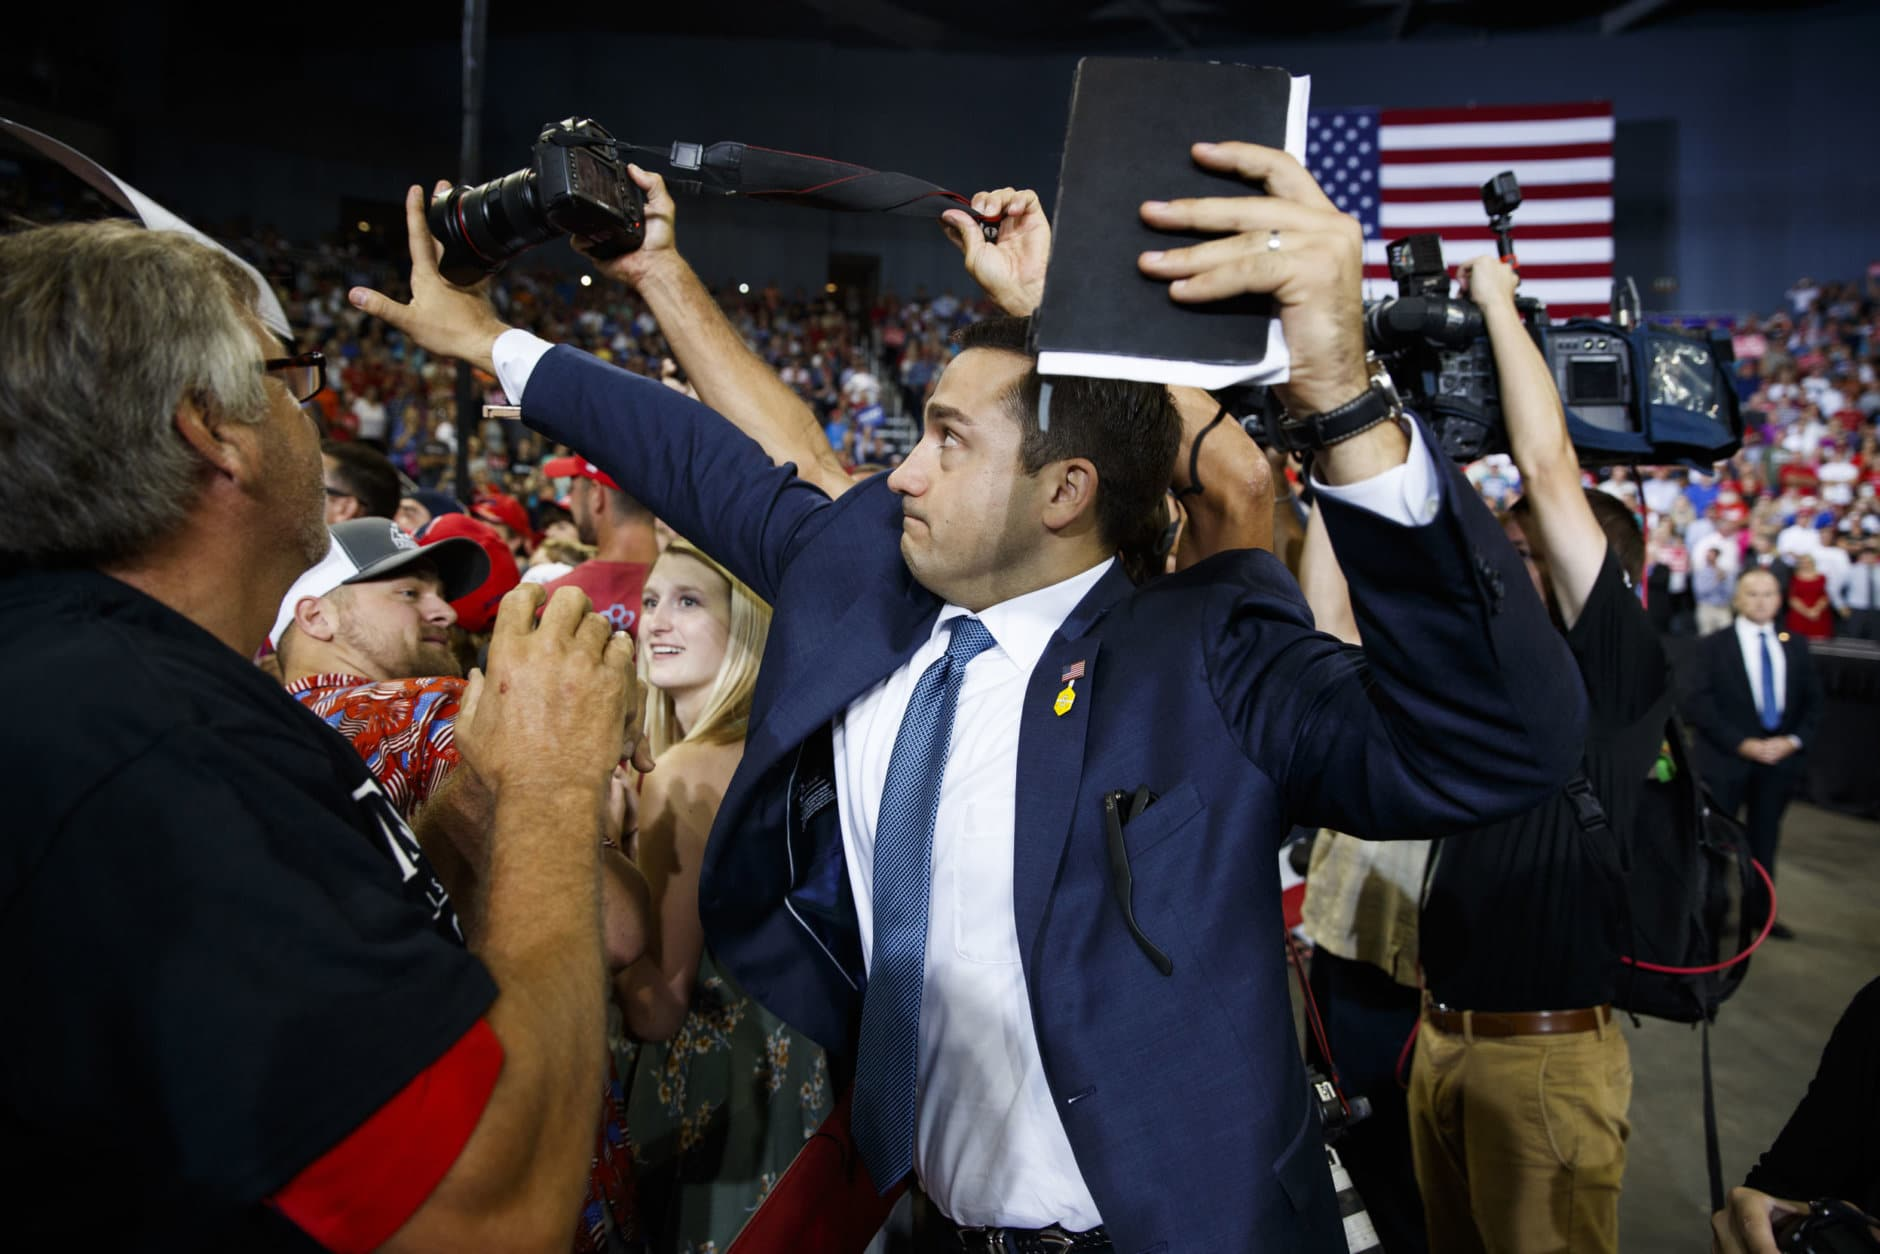 A volunteer member of the advance team for President Donald Trump blocks a camera as a photojournalist attempts to take a photo of a protester during a campaign rally in Evansville, Ind., on Aug. 30, 2018. (AP Photo/Evan Vucci)